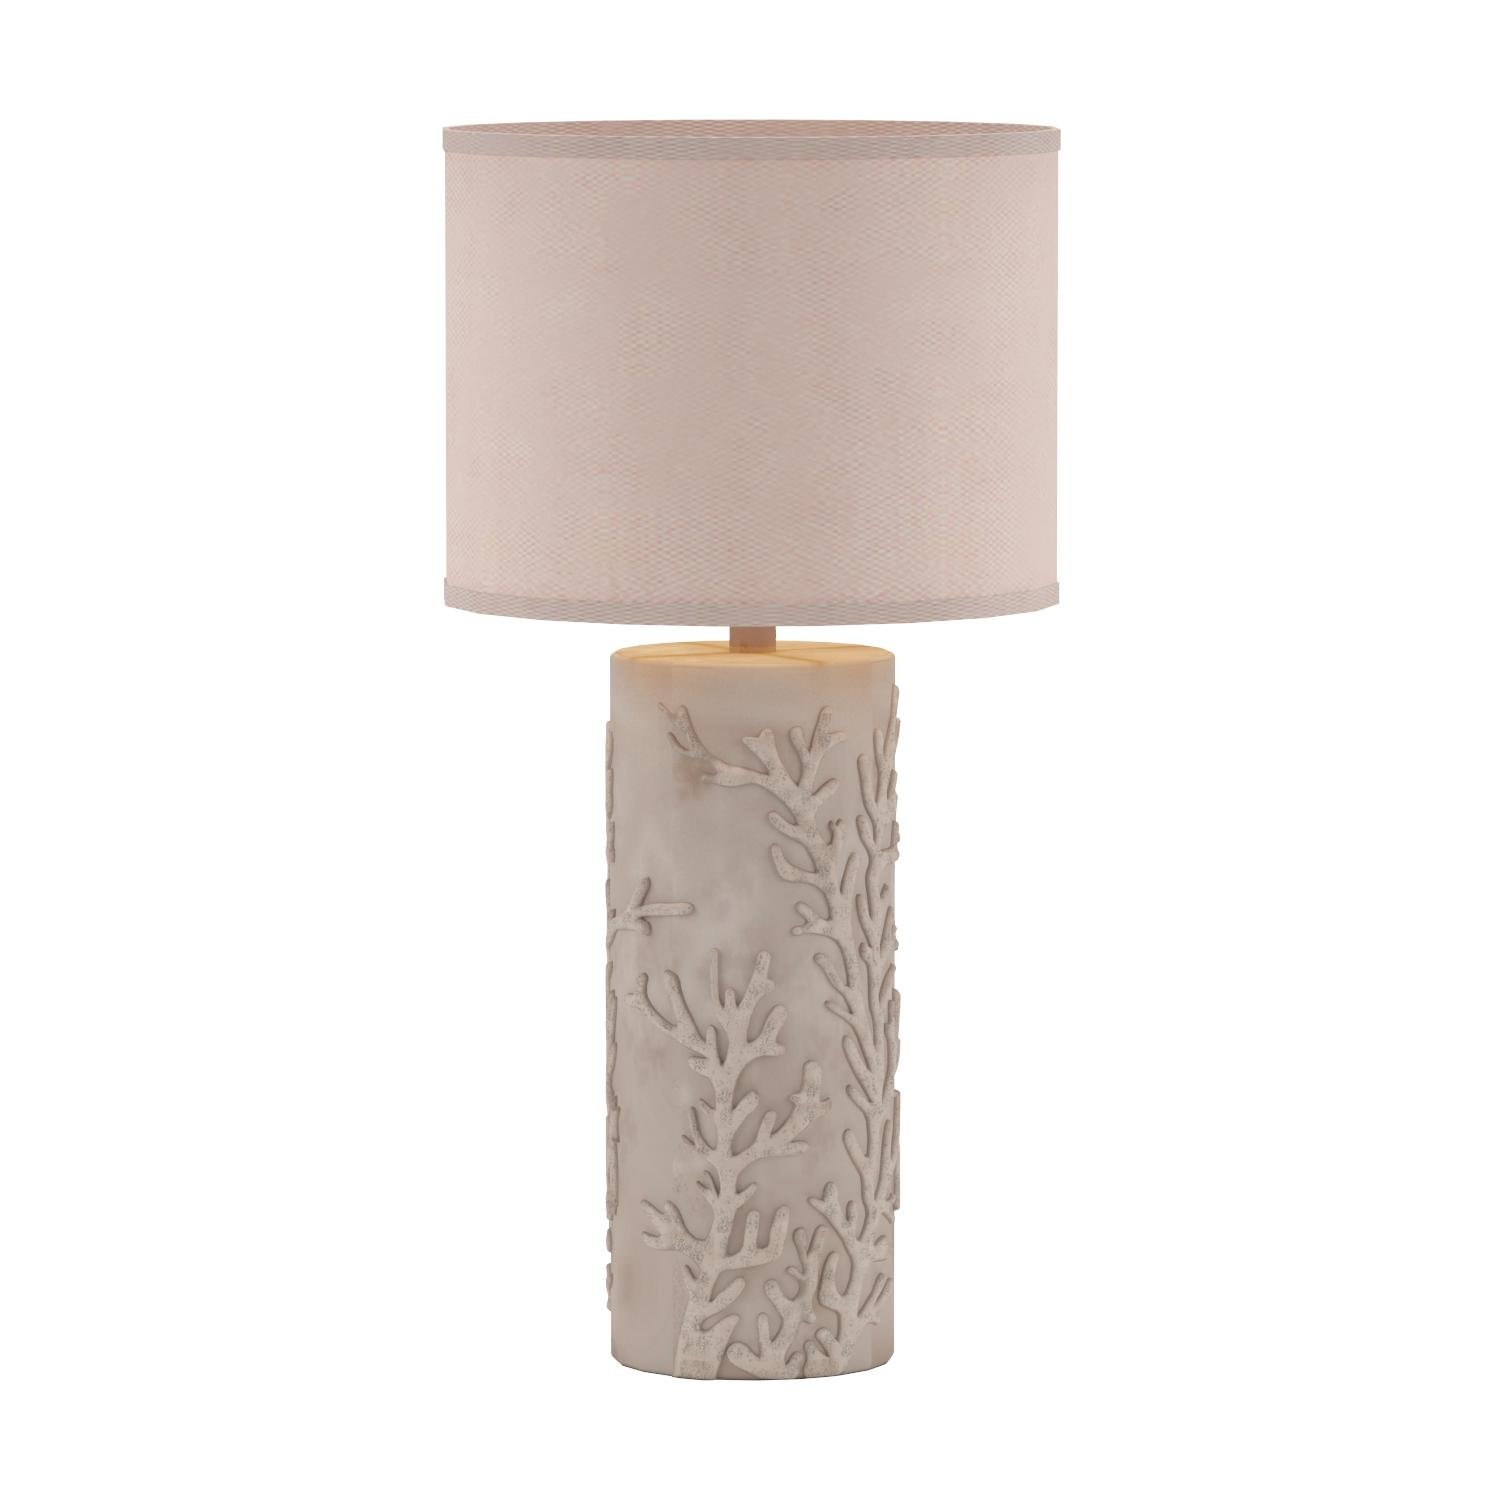 Kenroy Home 32267AWH Reef Table Lamp, Antique White Finish by Kenroy Home (Image #4)